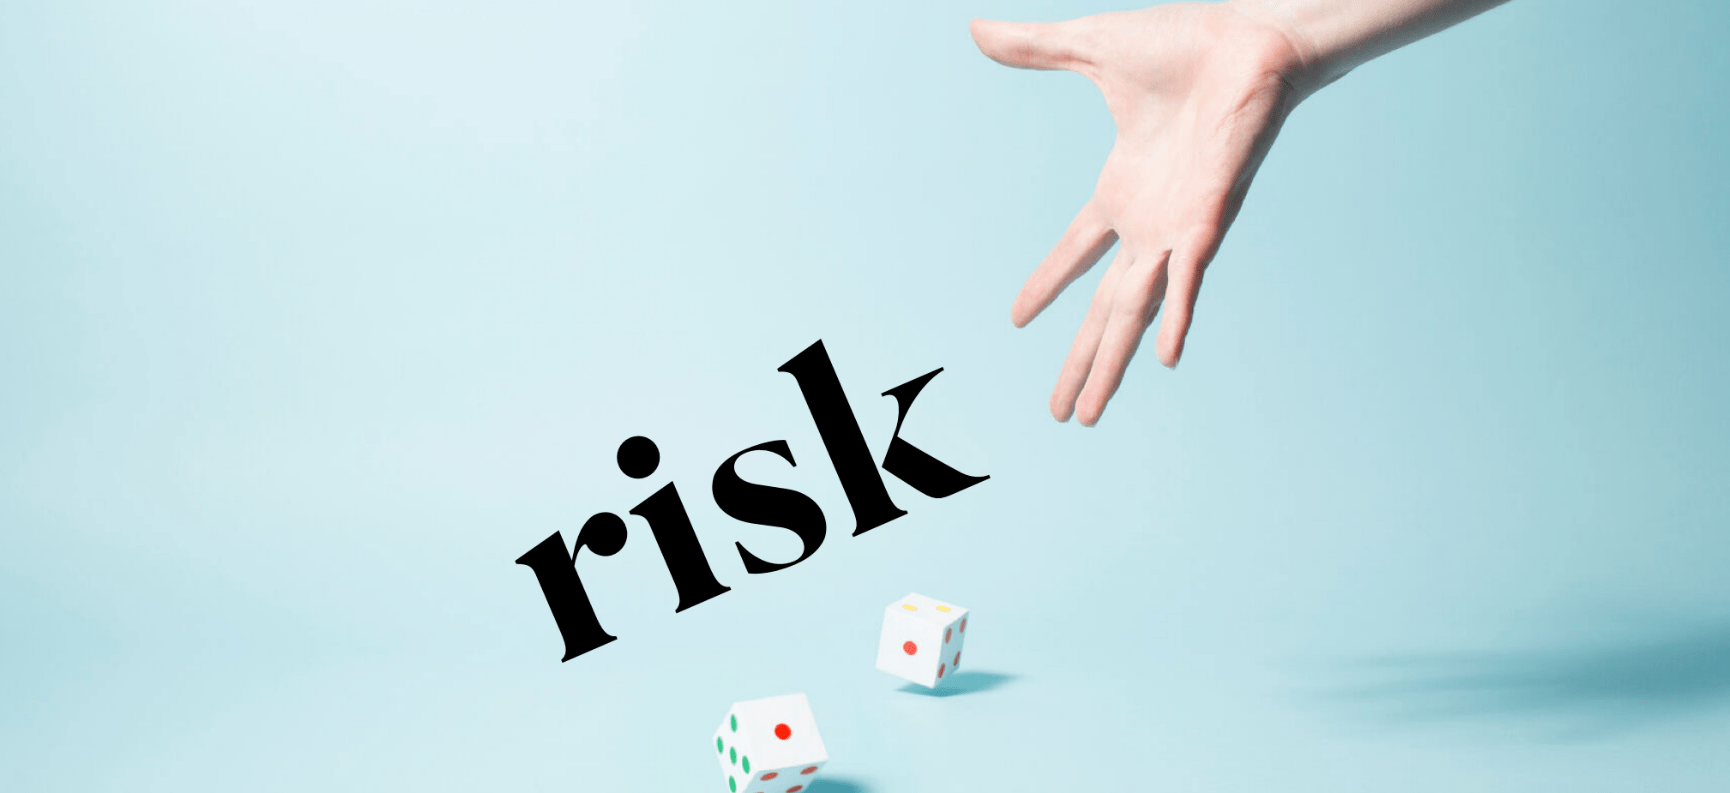 Theme Image for Risk